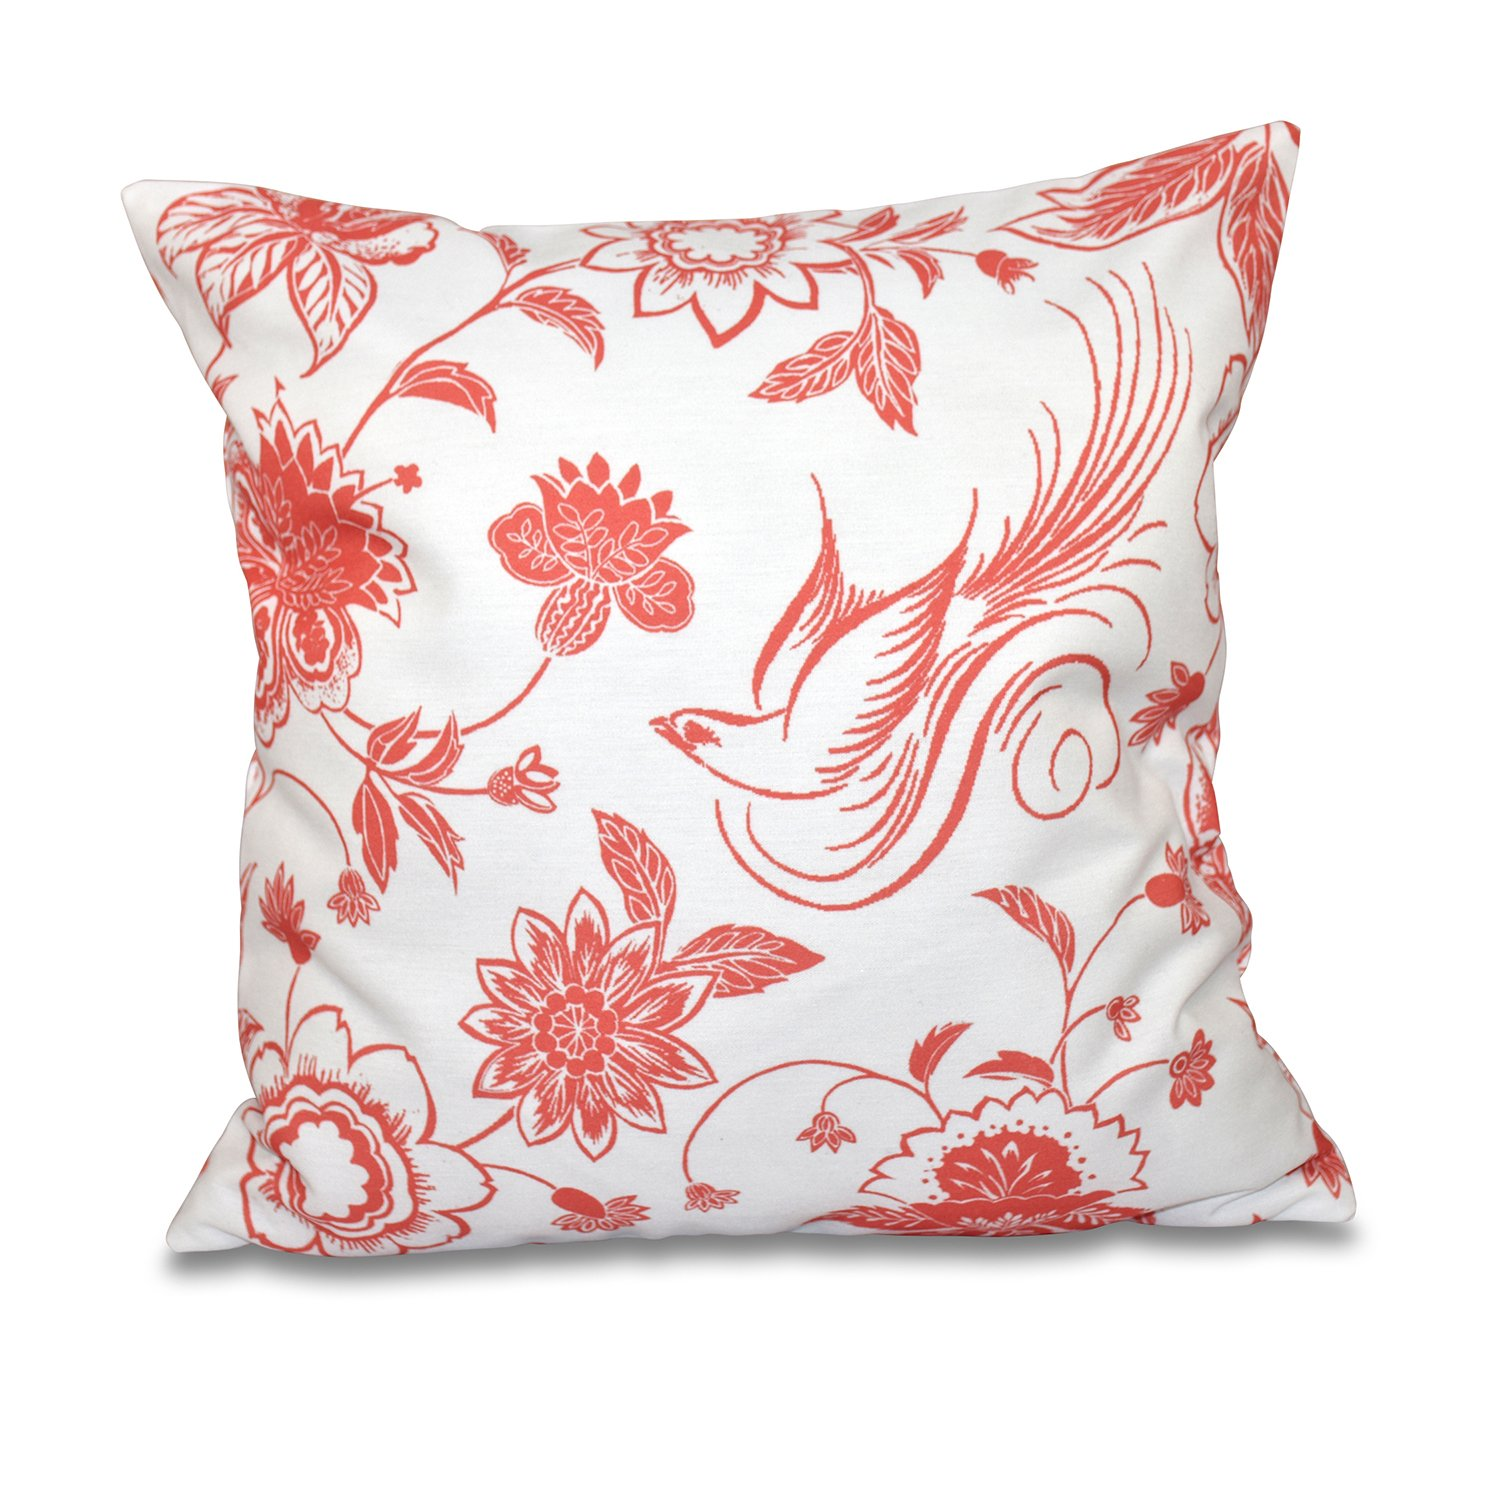 E by design O5PFN497OR9-20 20 X 20 Traditional Bird Floral Animal Orange/Red Outdoor Pillow